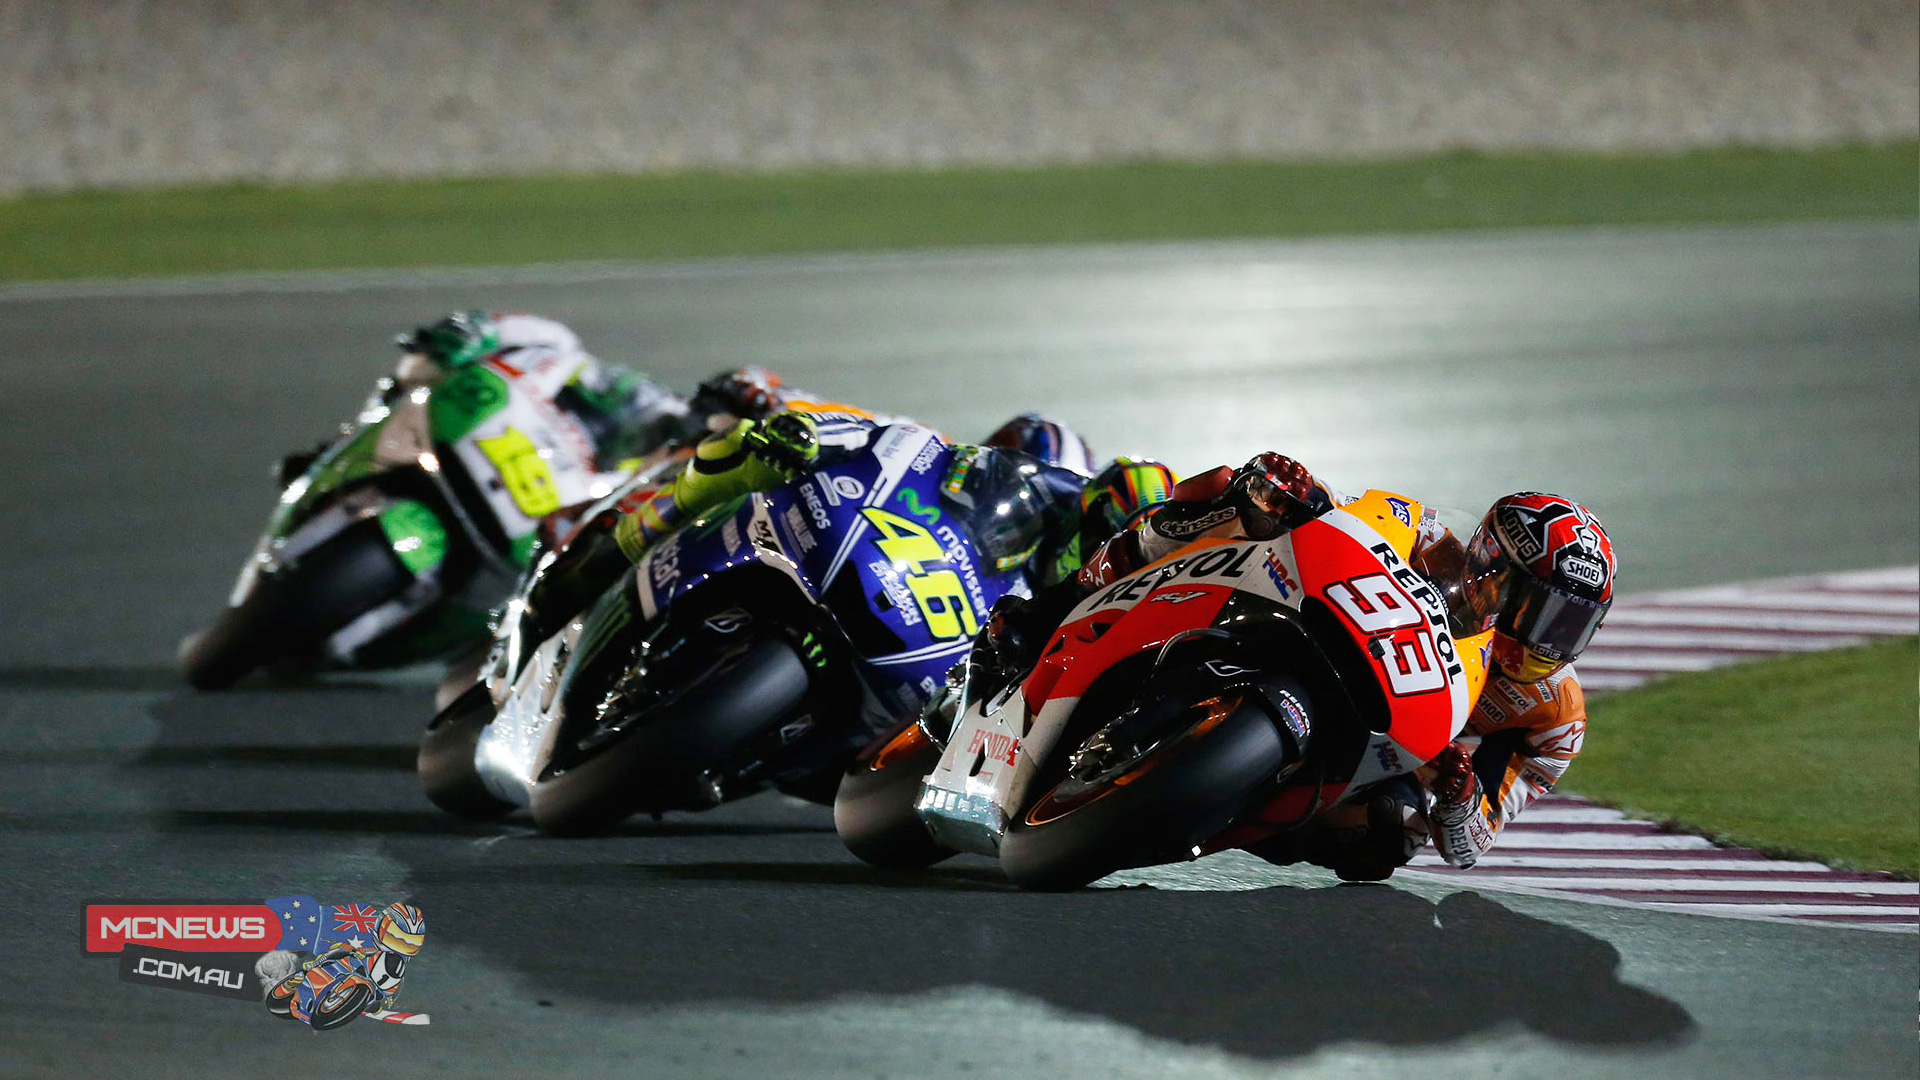 Motogp Wallpapers